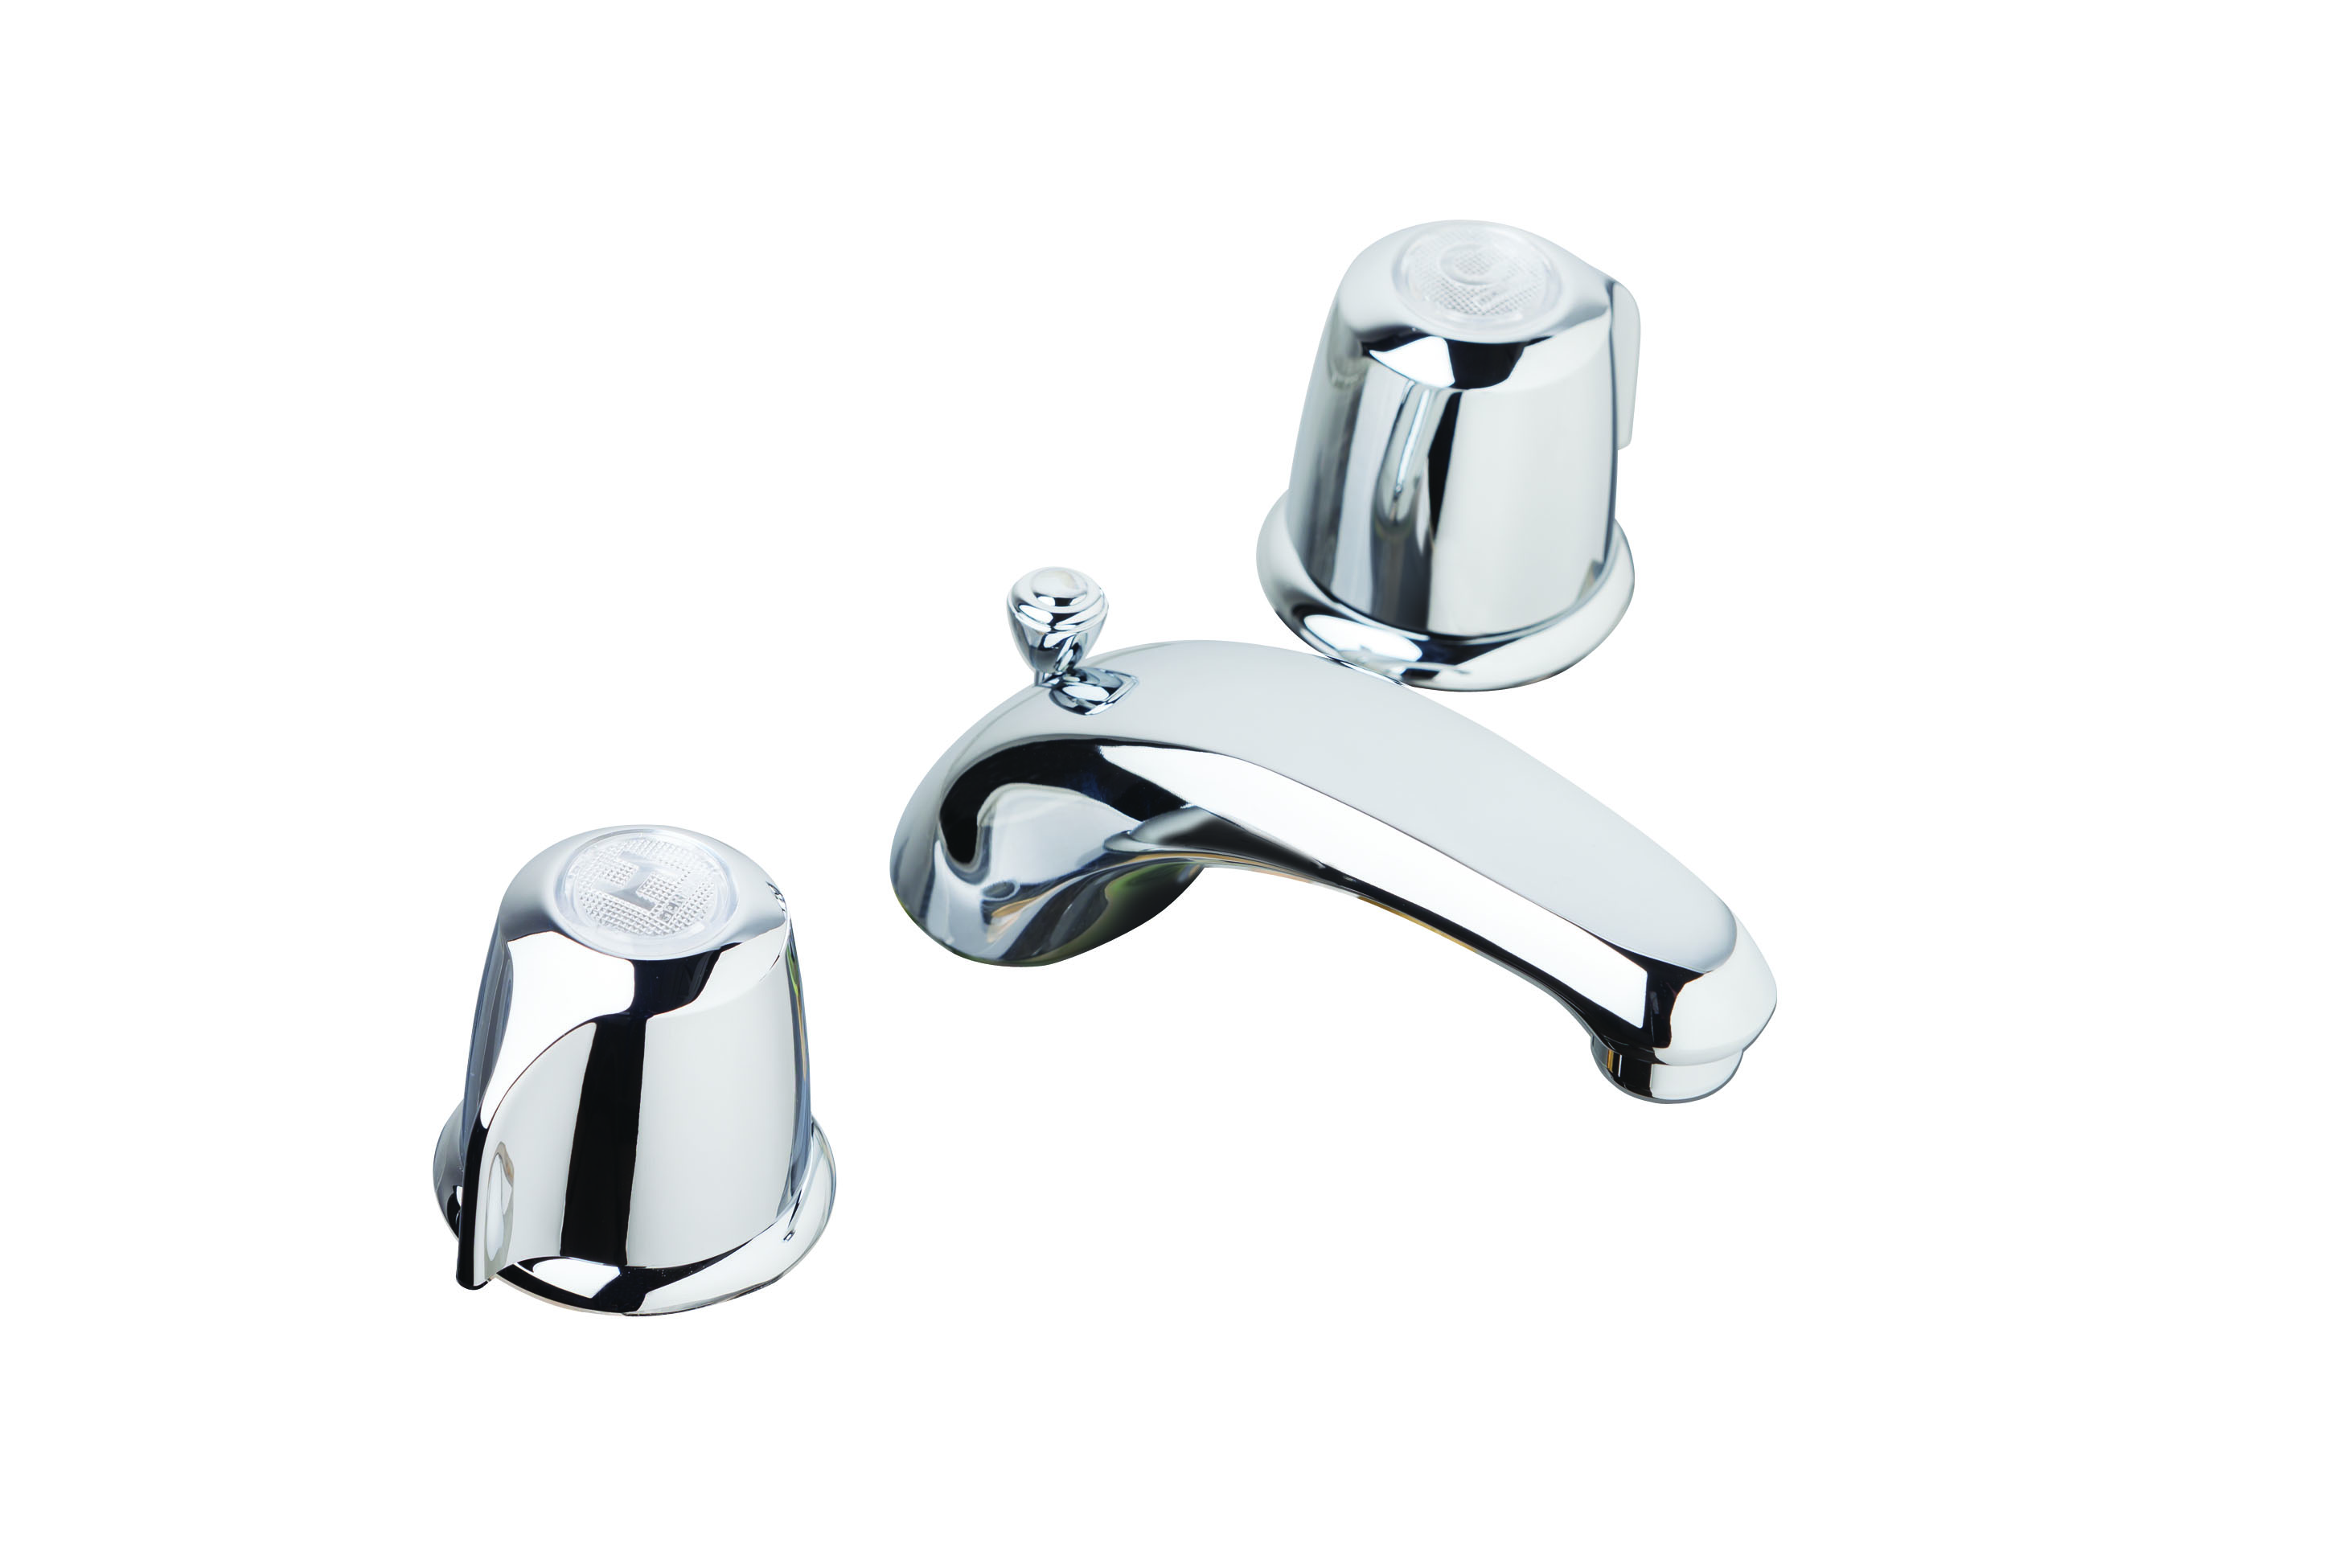 shop aldora faucet pl bathroom porcelain sinks lavatory lever widespread handles cp